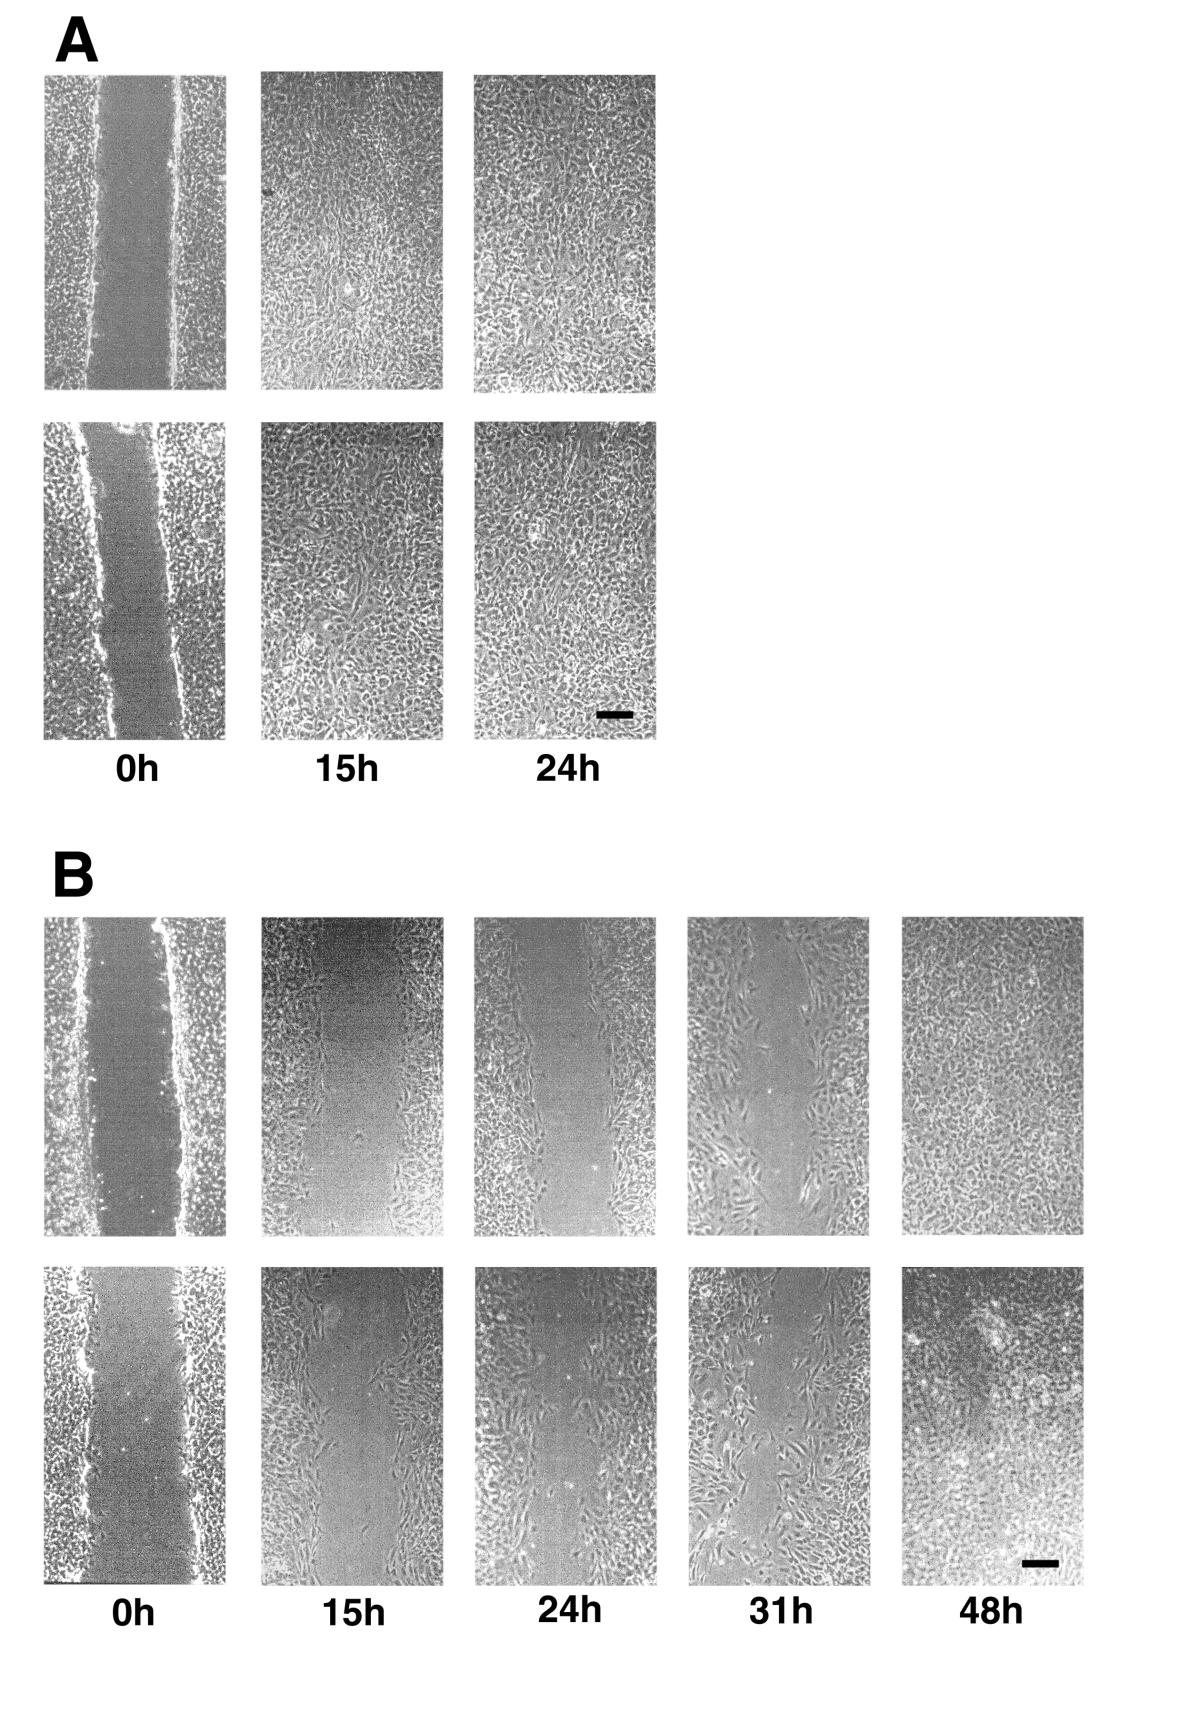 http://static-content.springer.com/image/art%3A10.1186%2F1471-2121-2-15/MediaObjects/12860_2001_Article_19_Fig4_HTML.jpg